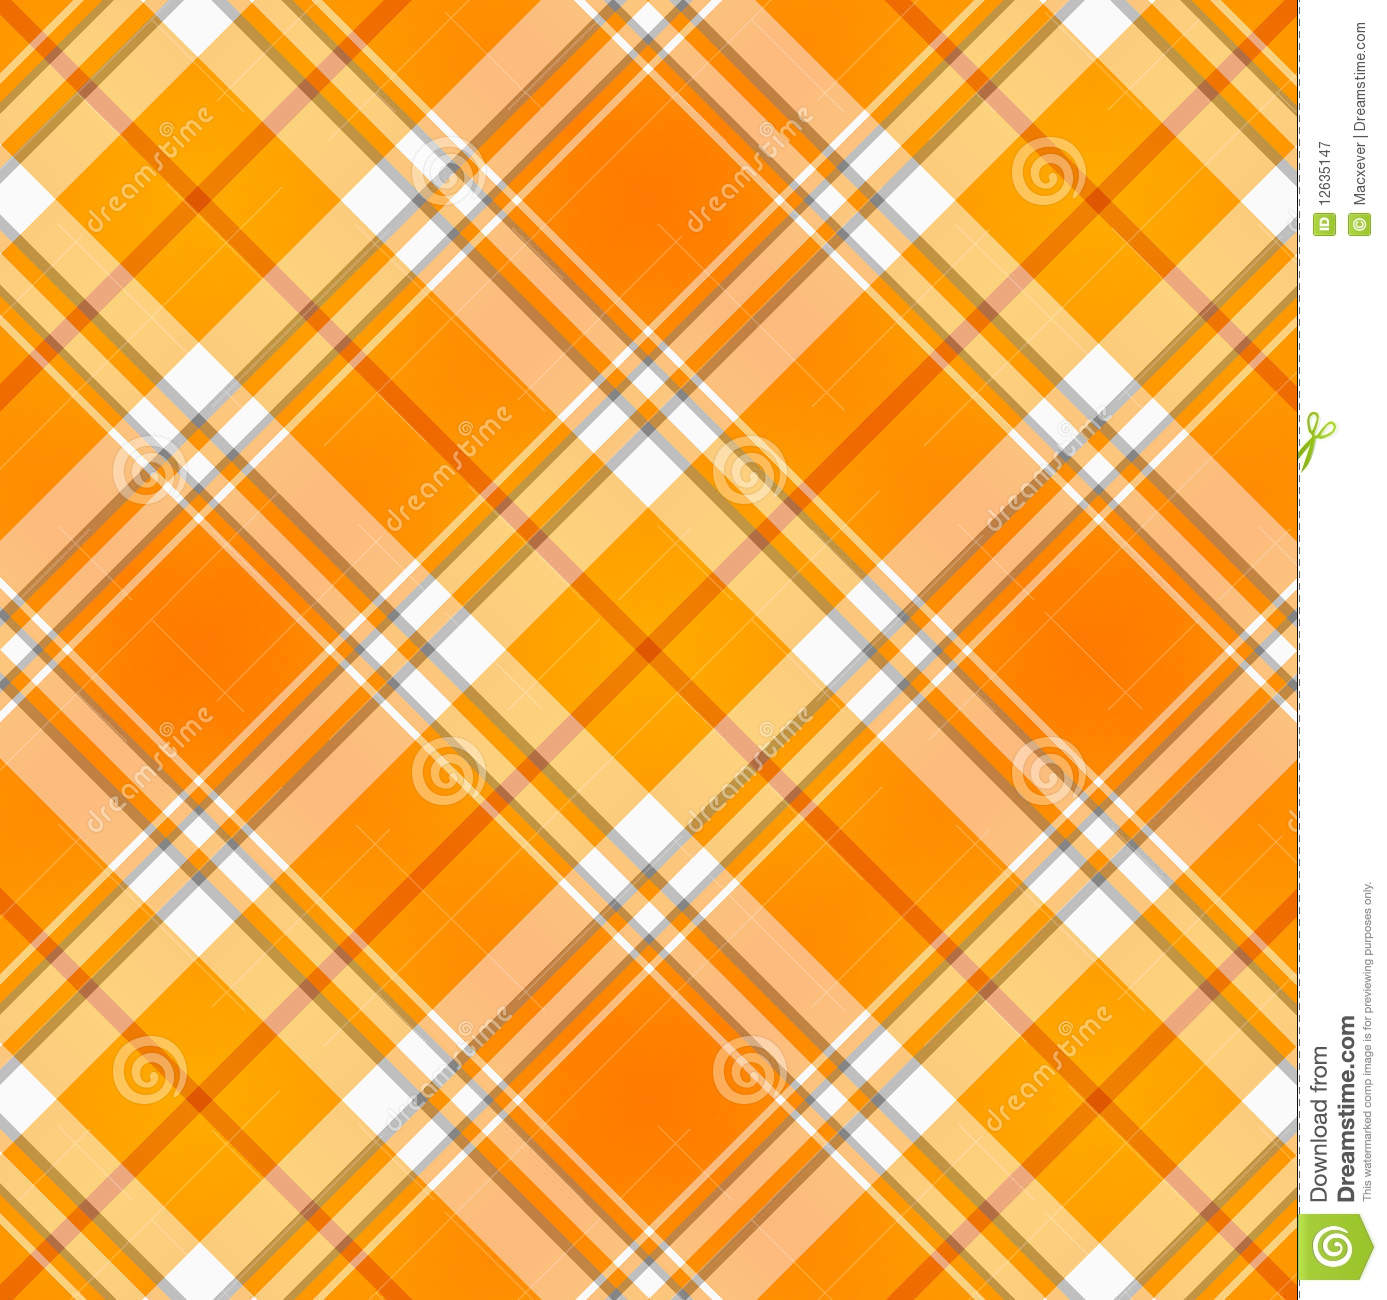 yellow tartan wallpaper